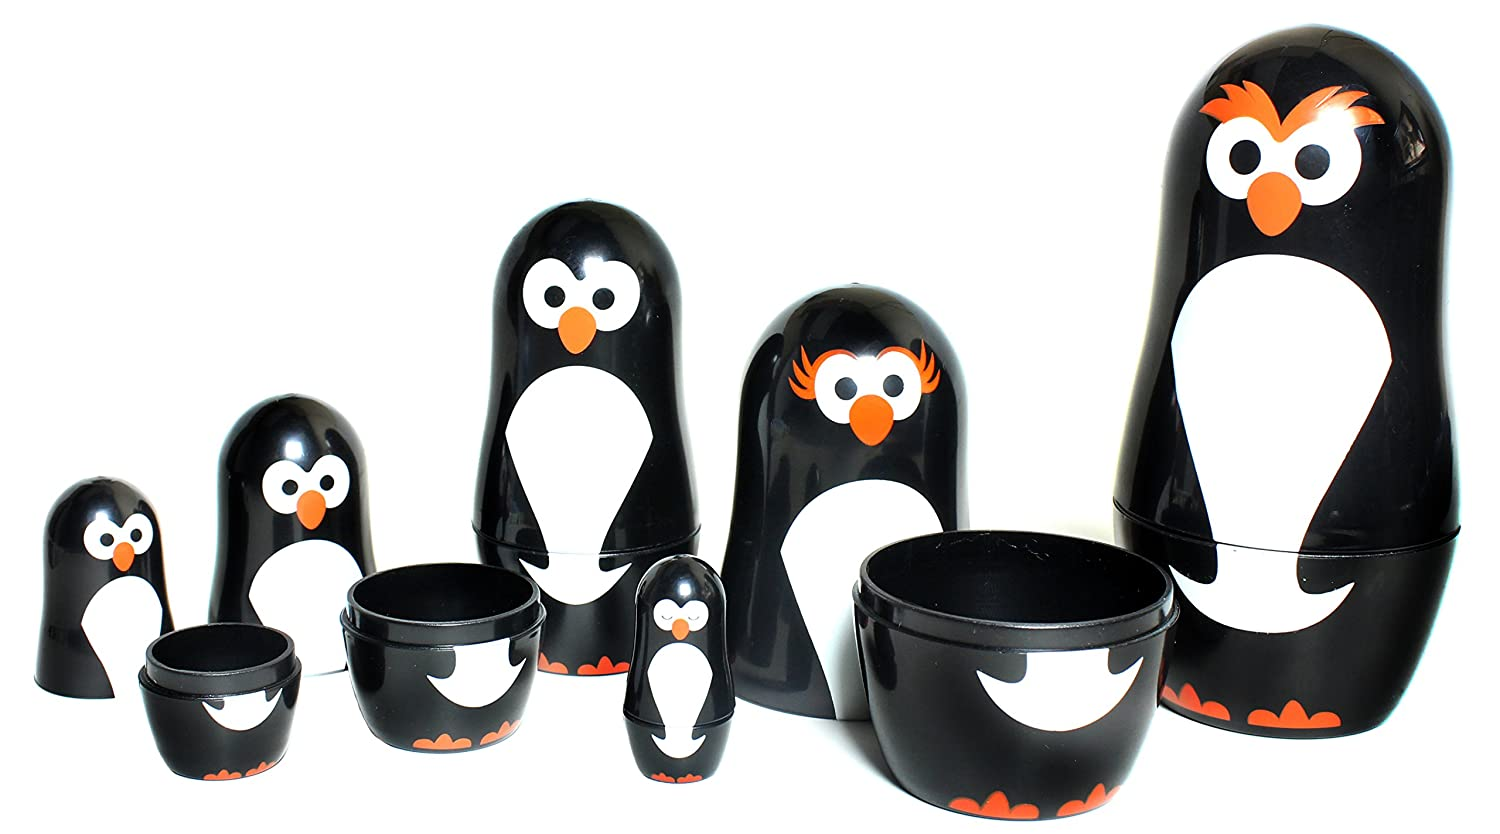 Penguin Nesting Dolls - 6 Matryoshka Penguins - All Hollow To Fit Inside Each Other Play Visions PAPE